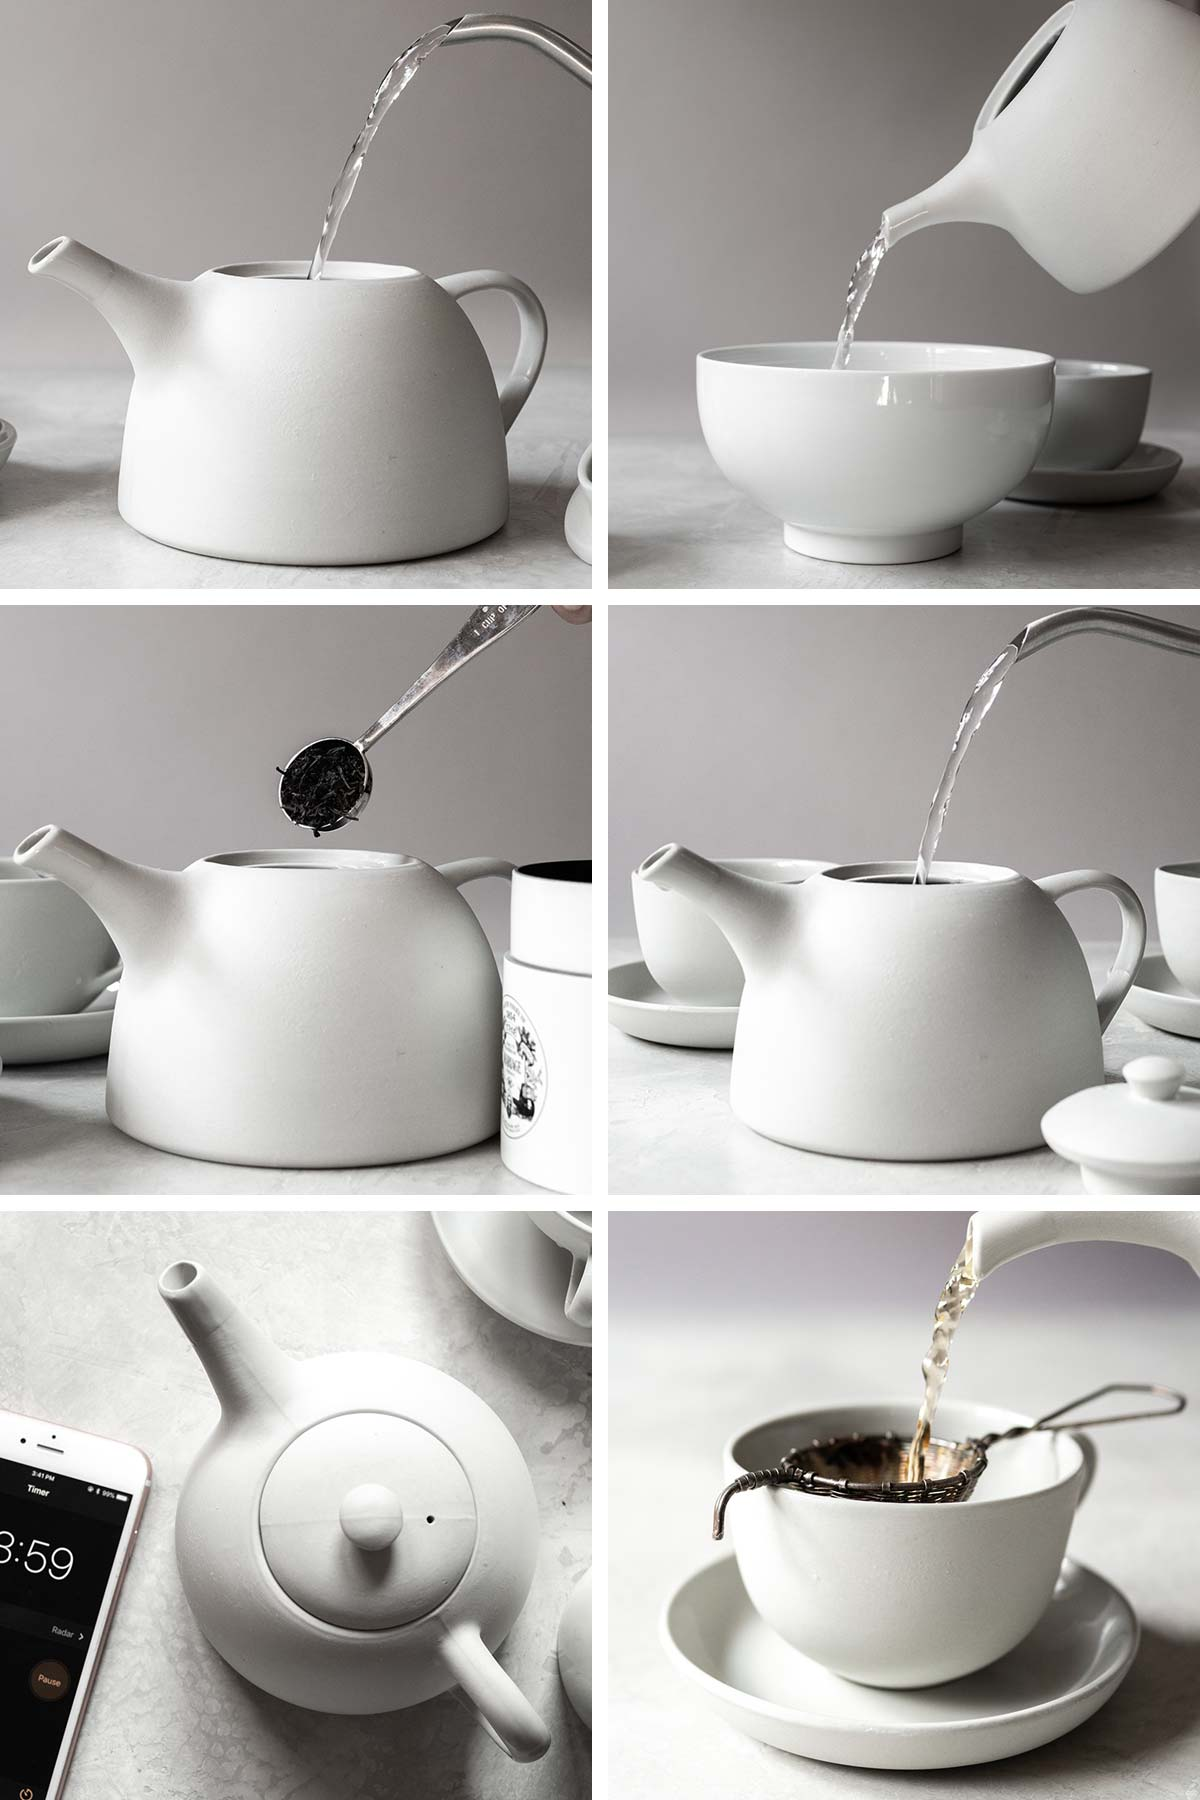 6 photos showing steps to make tea.